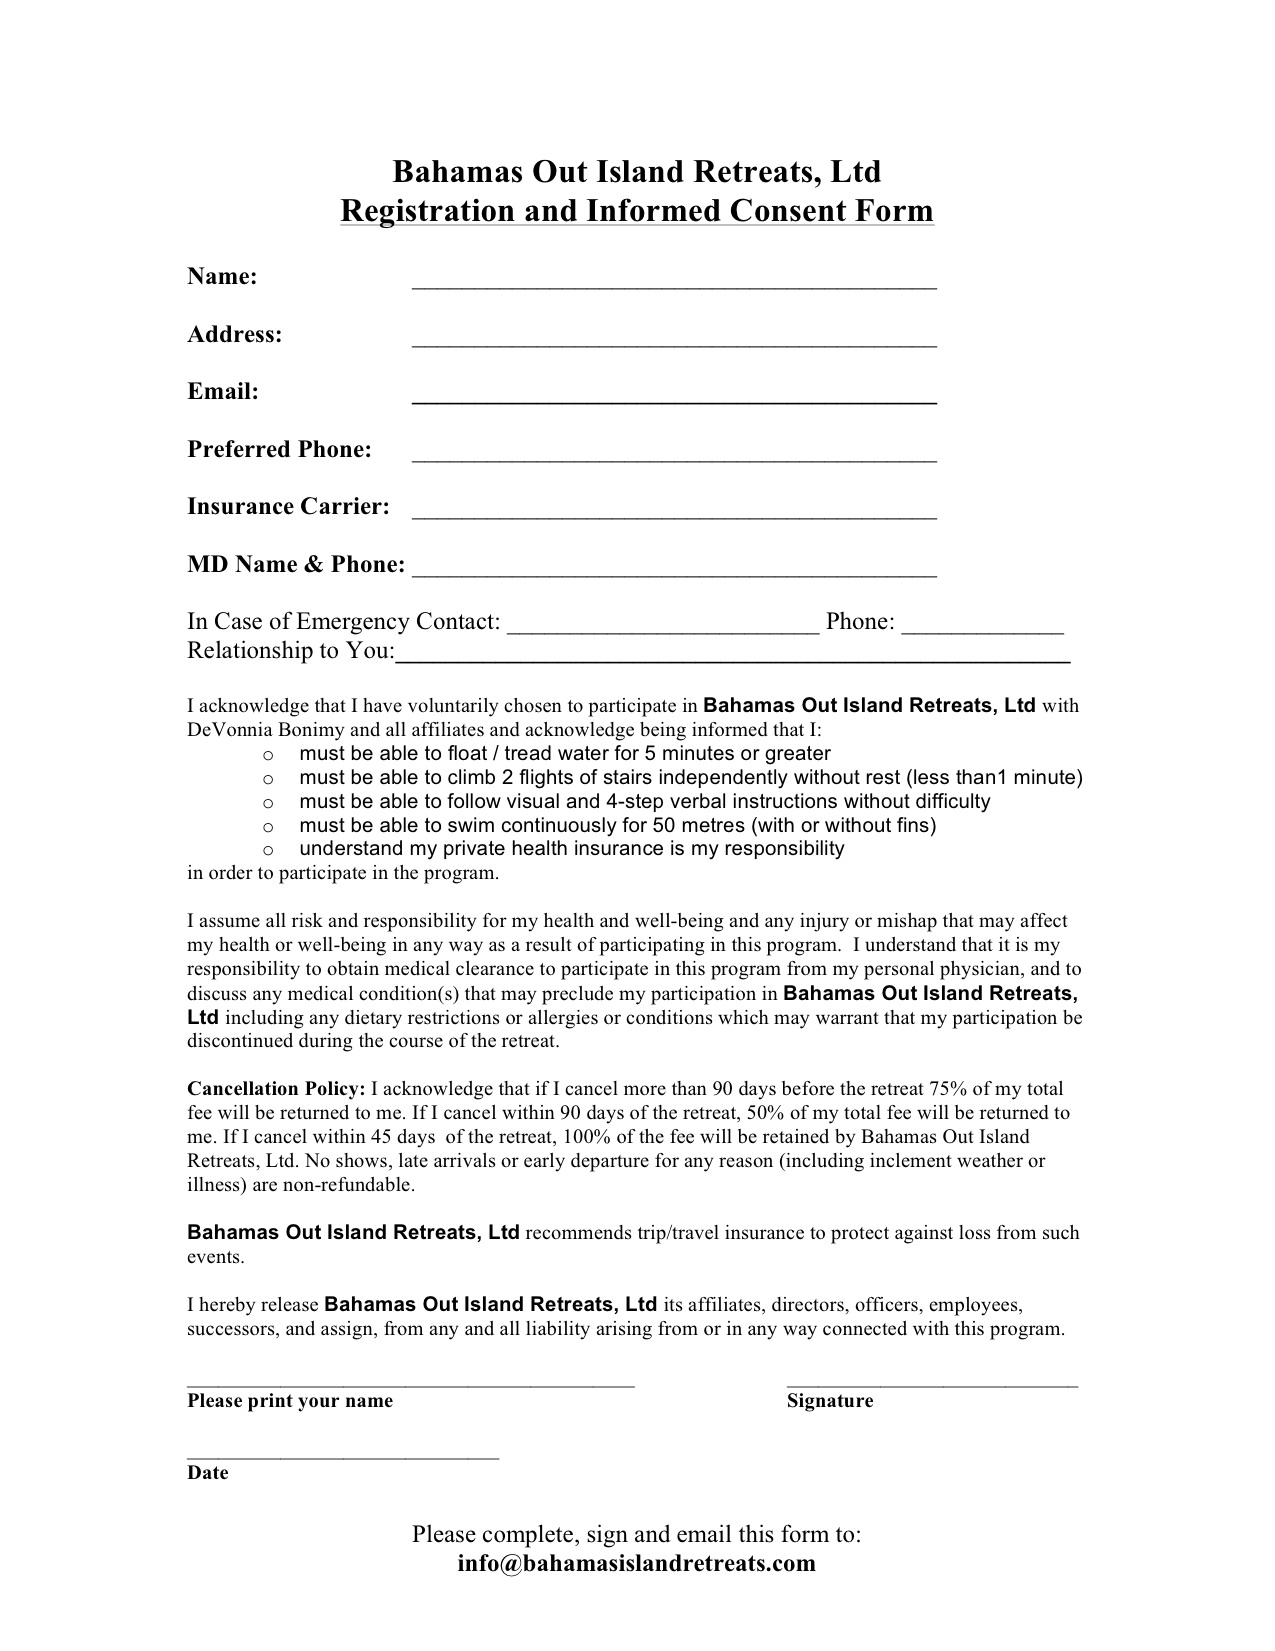 Consent Form — Bahamas Out Island Retreats